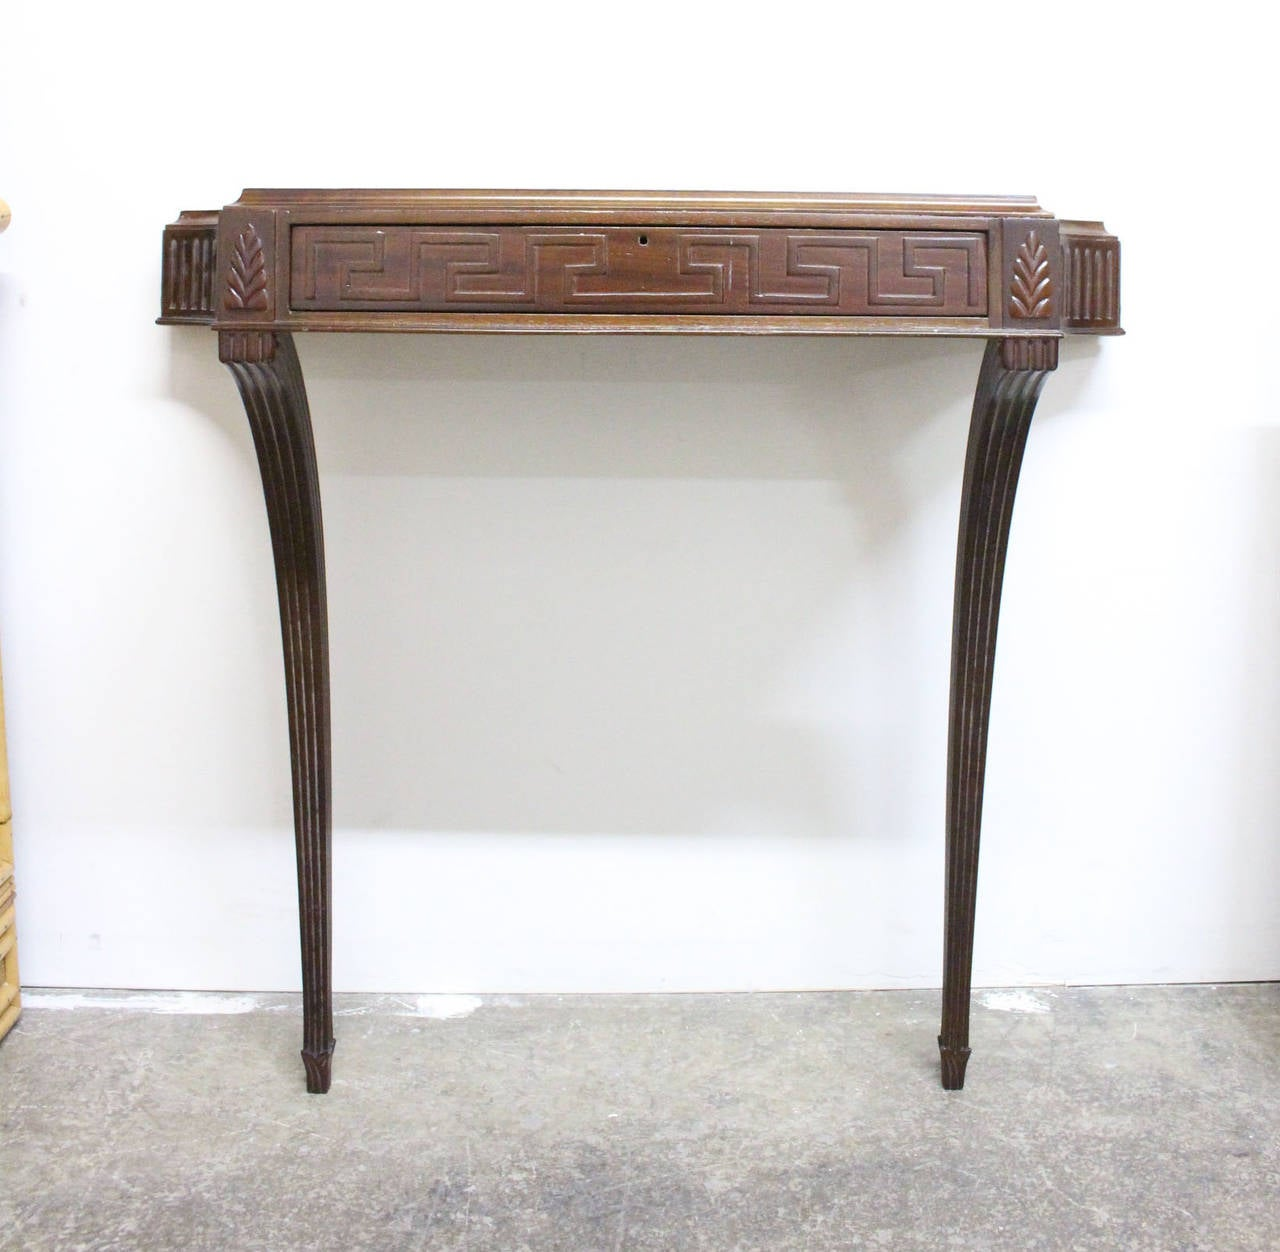 wallmounted console table by grosfeld house for sale at stdibs - wallmounted console table by grosfeld house